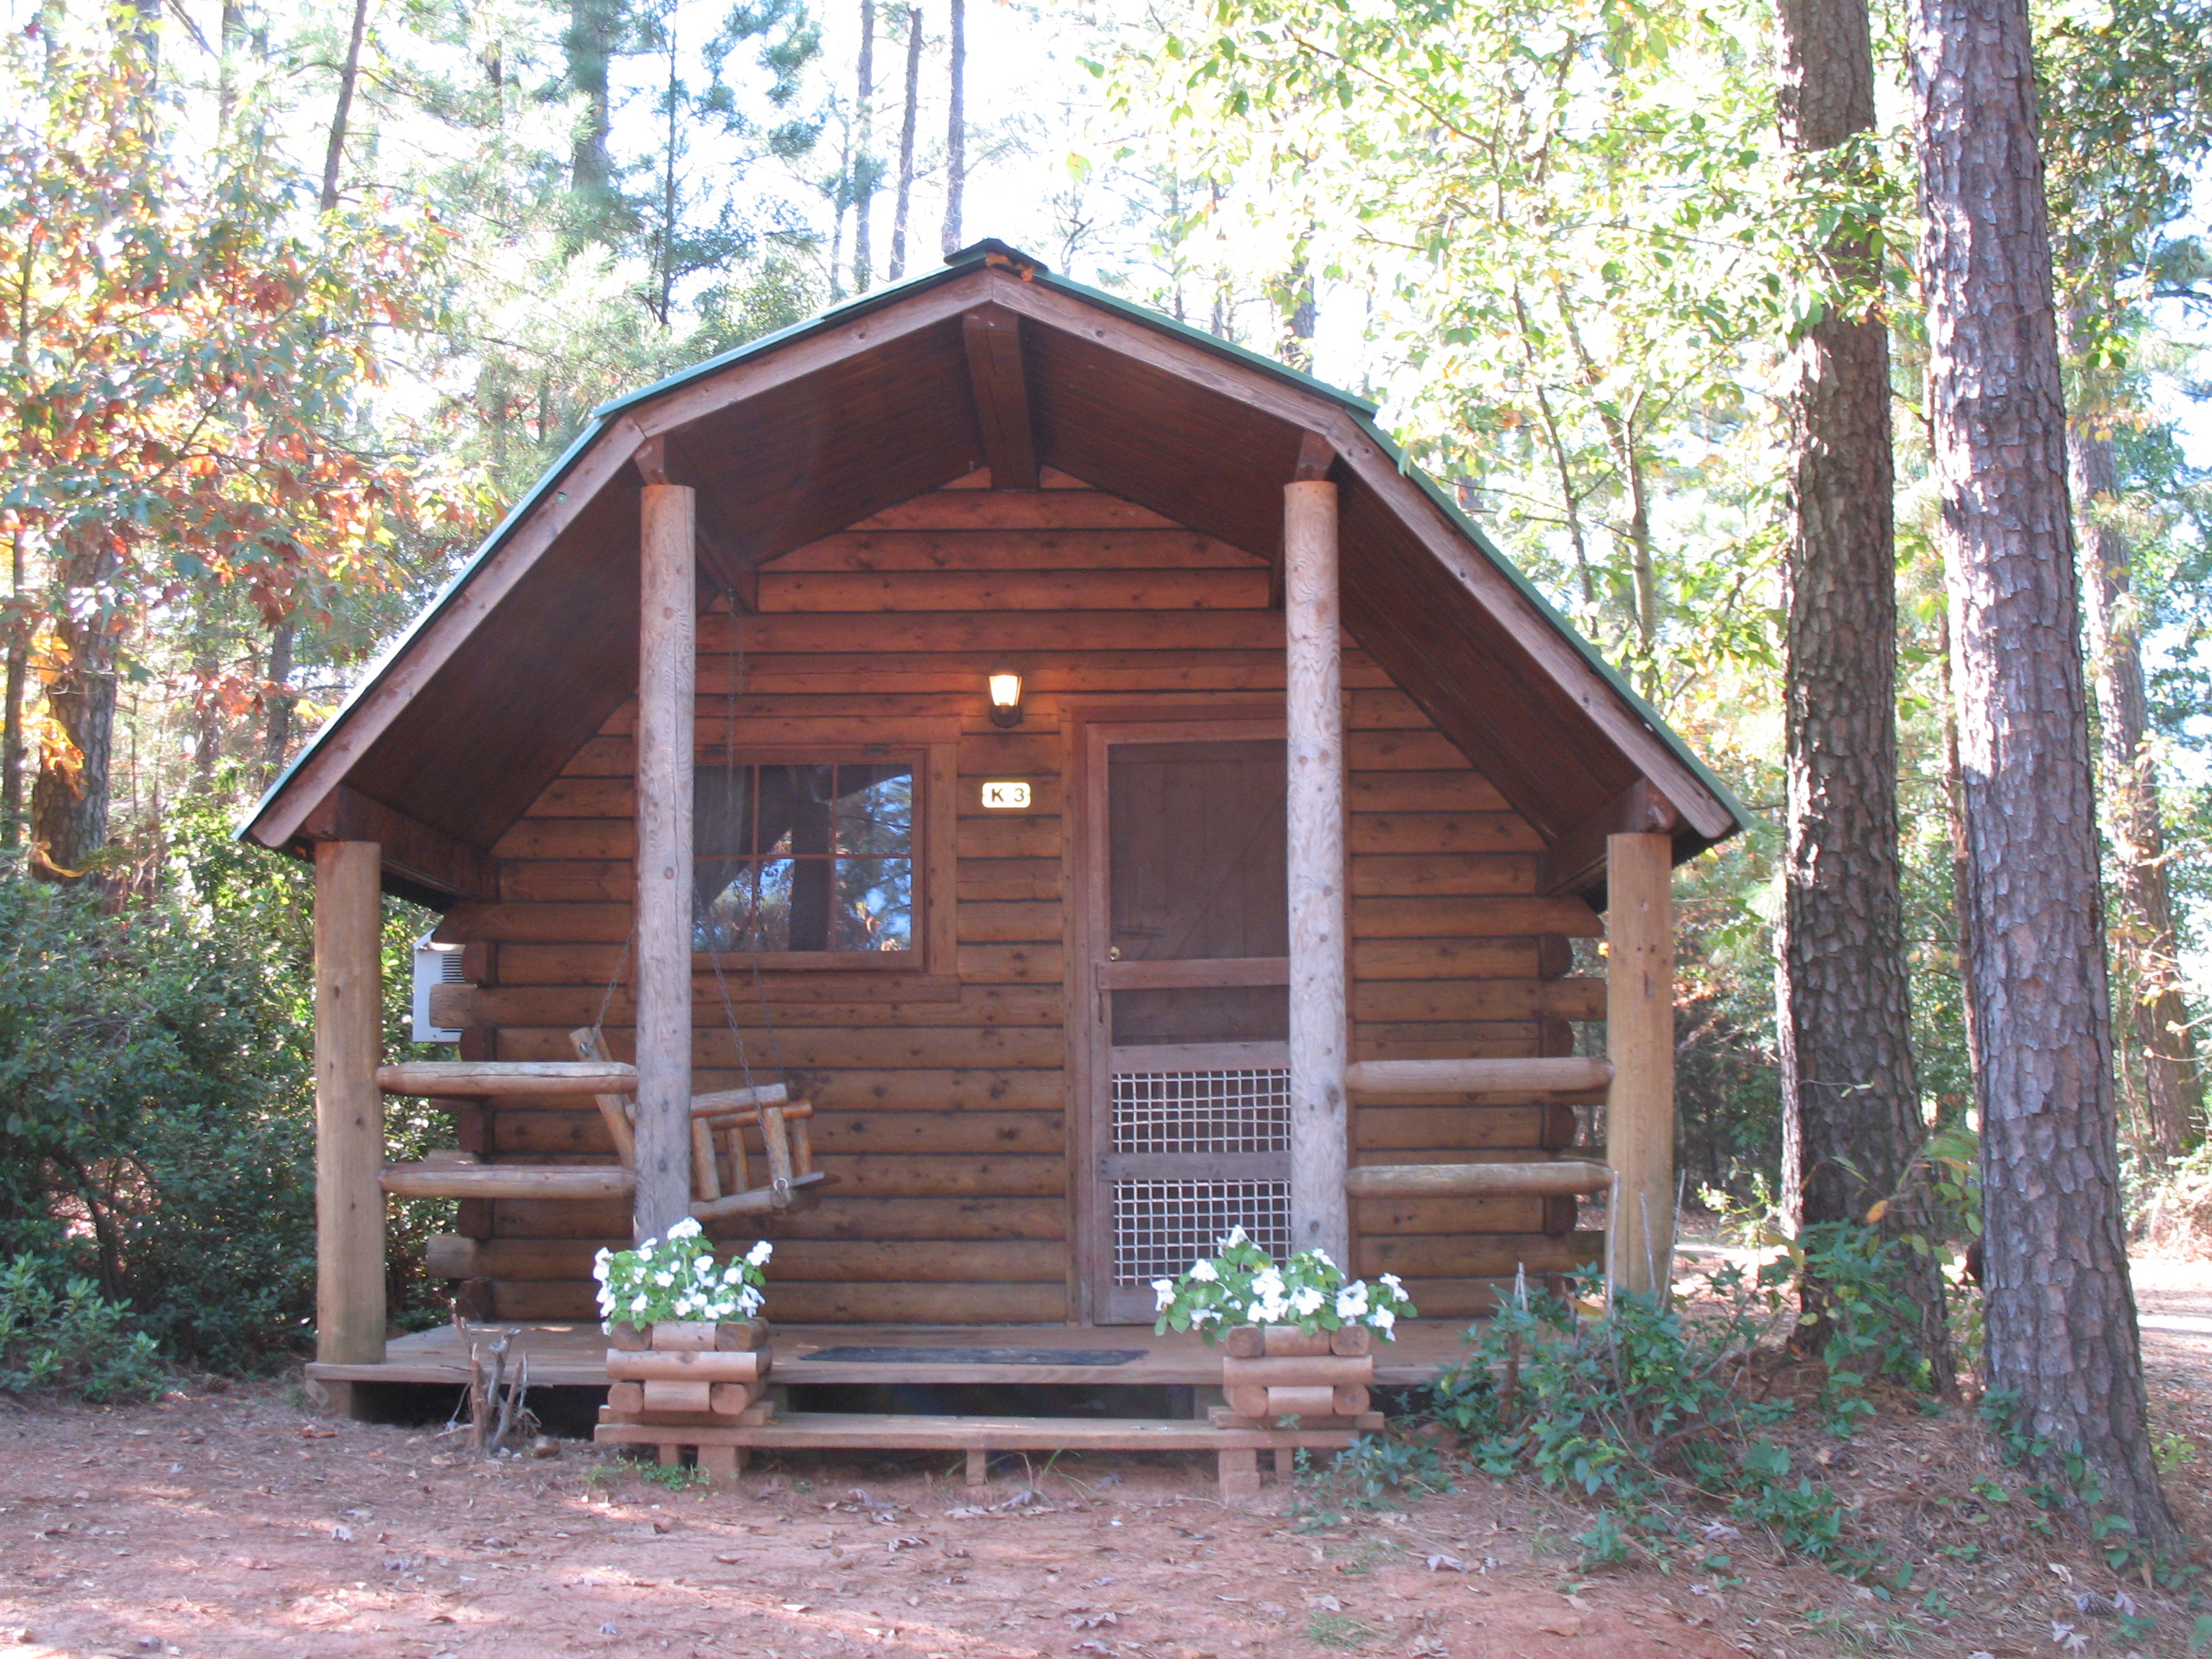 br mountains pin carolina rentals vrbo in boone blue cabins south nc rental cabin vacation ridge